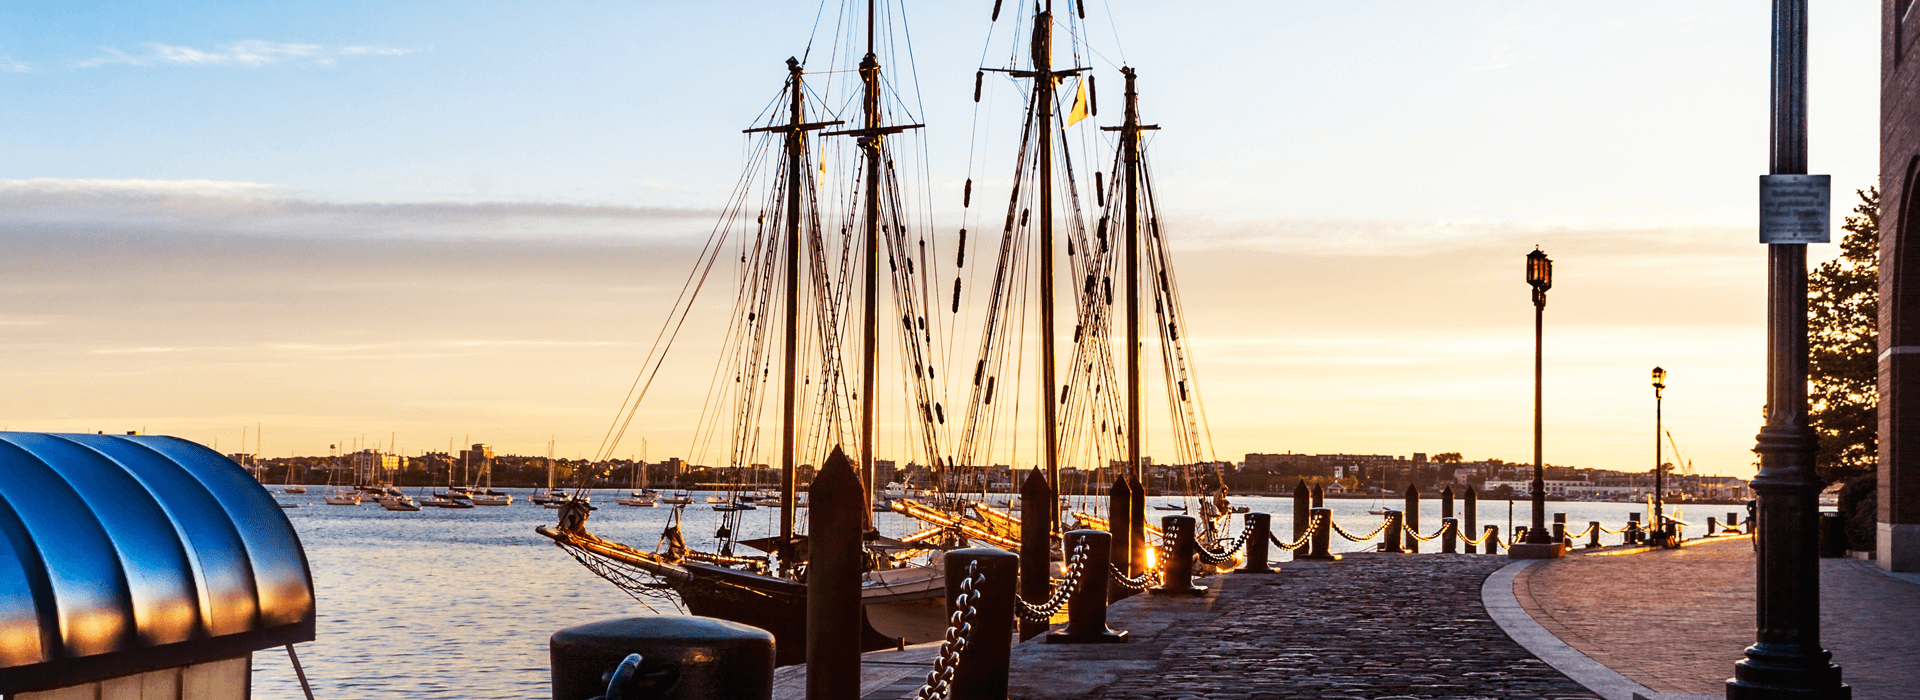 bollards and heavy chains by the moored tall ships in Boston Harbor